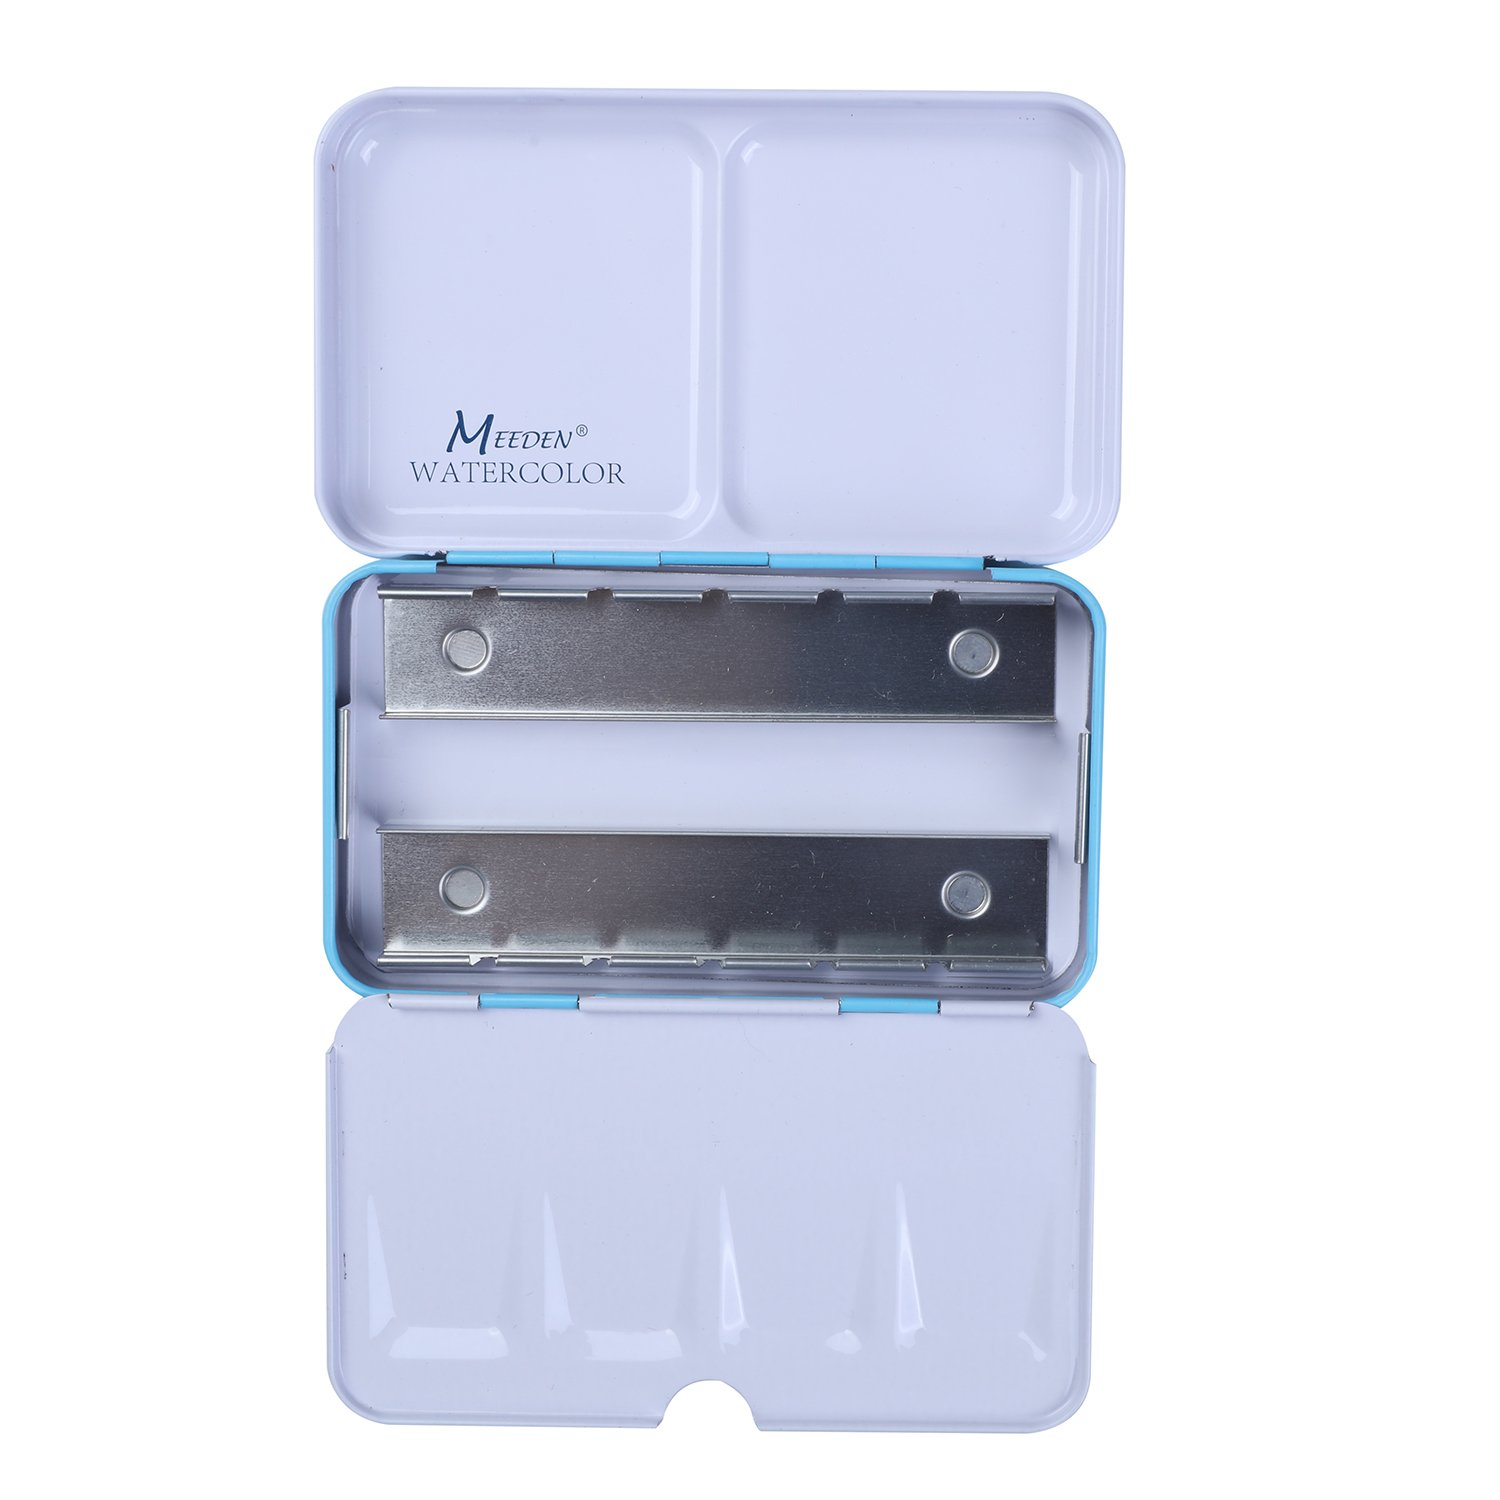 MEEDEN Empty Watercolor Tins Box Palette Paint Case Will Hold 24 Half Pans or 12 Full Pans Medium Blue Tin